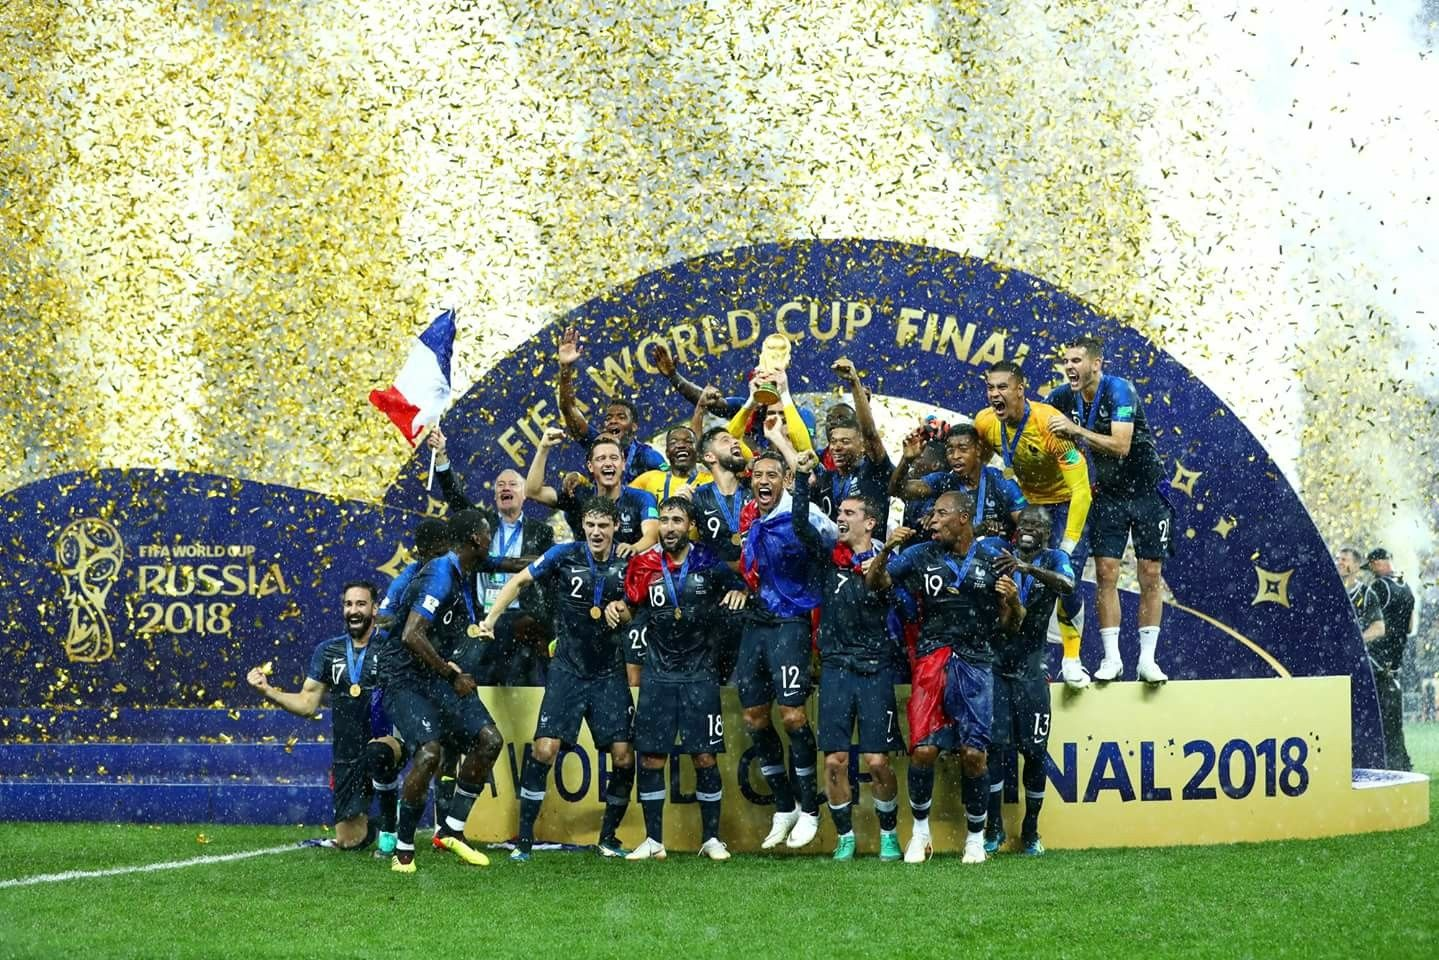 2018 Fifa World Cup Winners France World Cup World Cup Trophy World Cup 2018